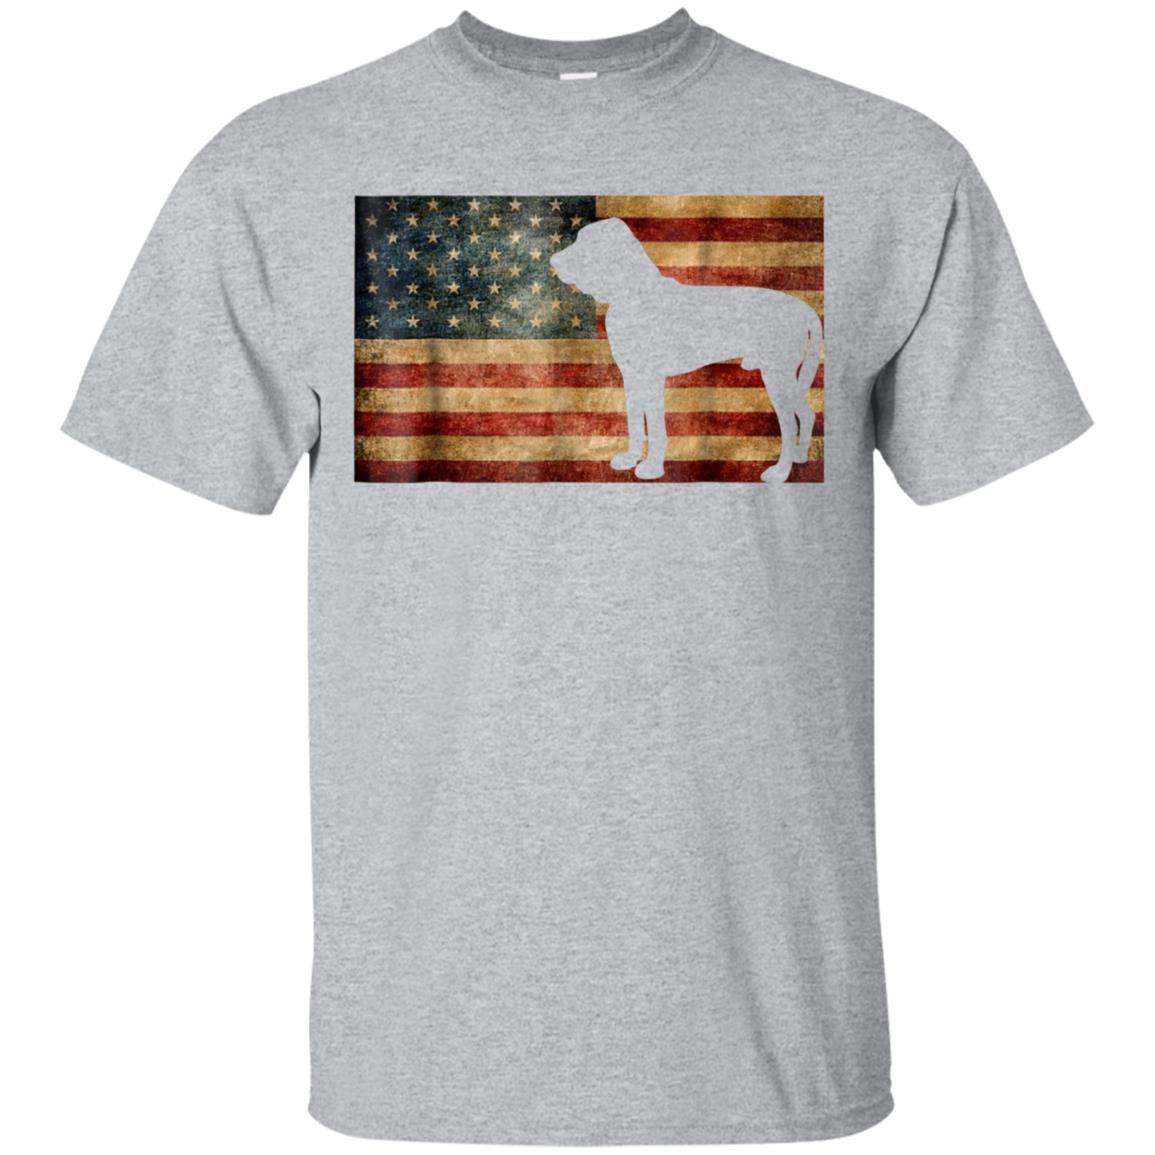 American Flag Bloodhound T-Shirt Patriotic Flag Dog Gift 99promocode